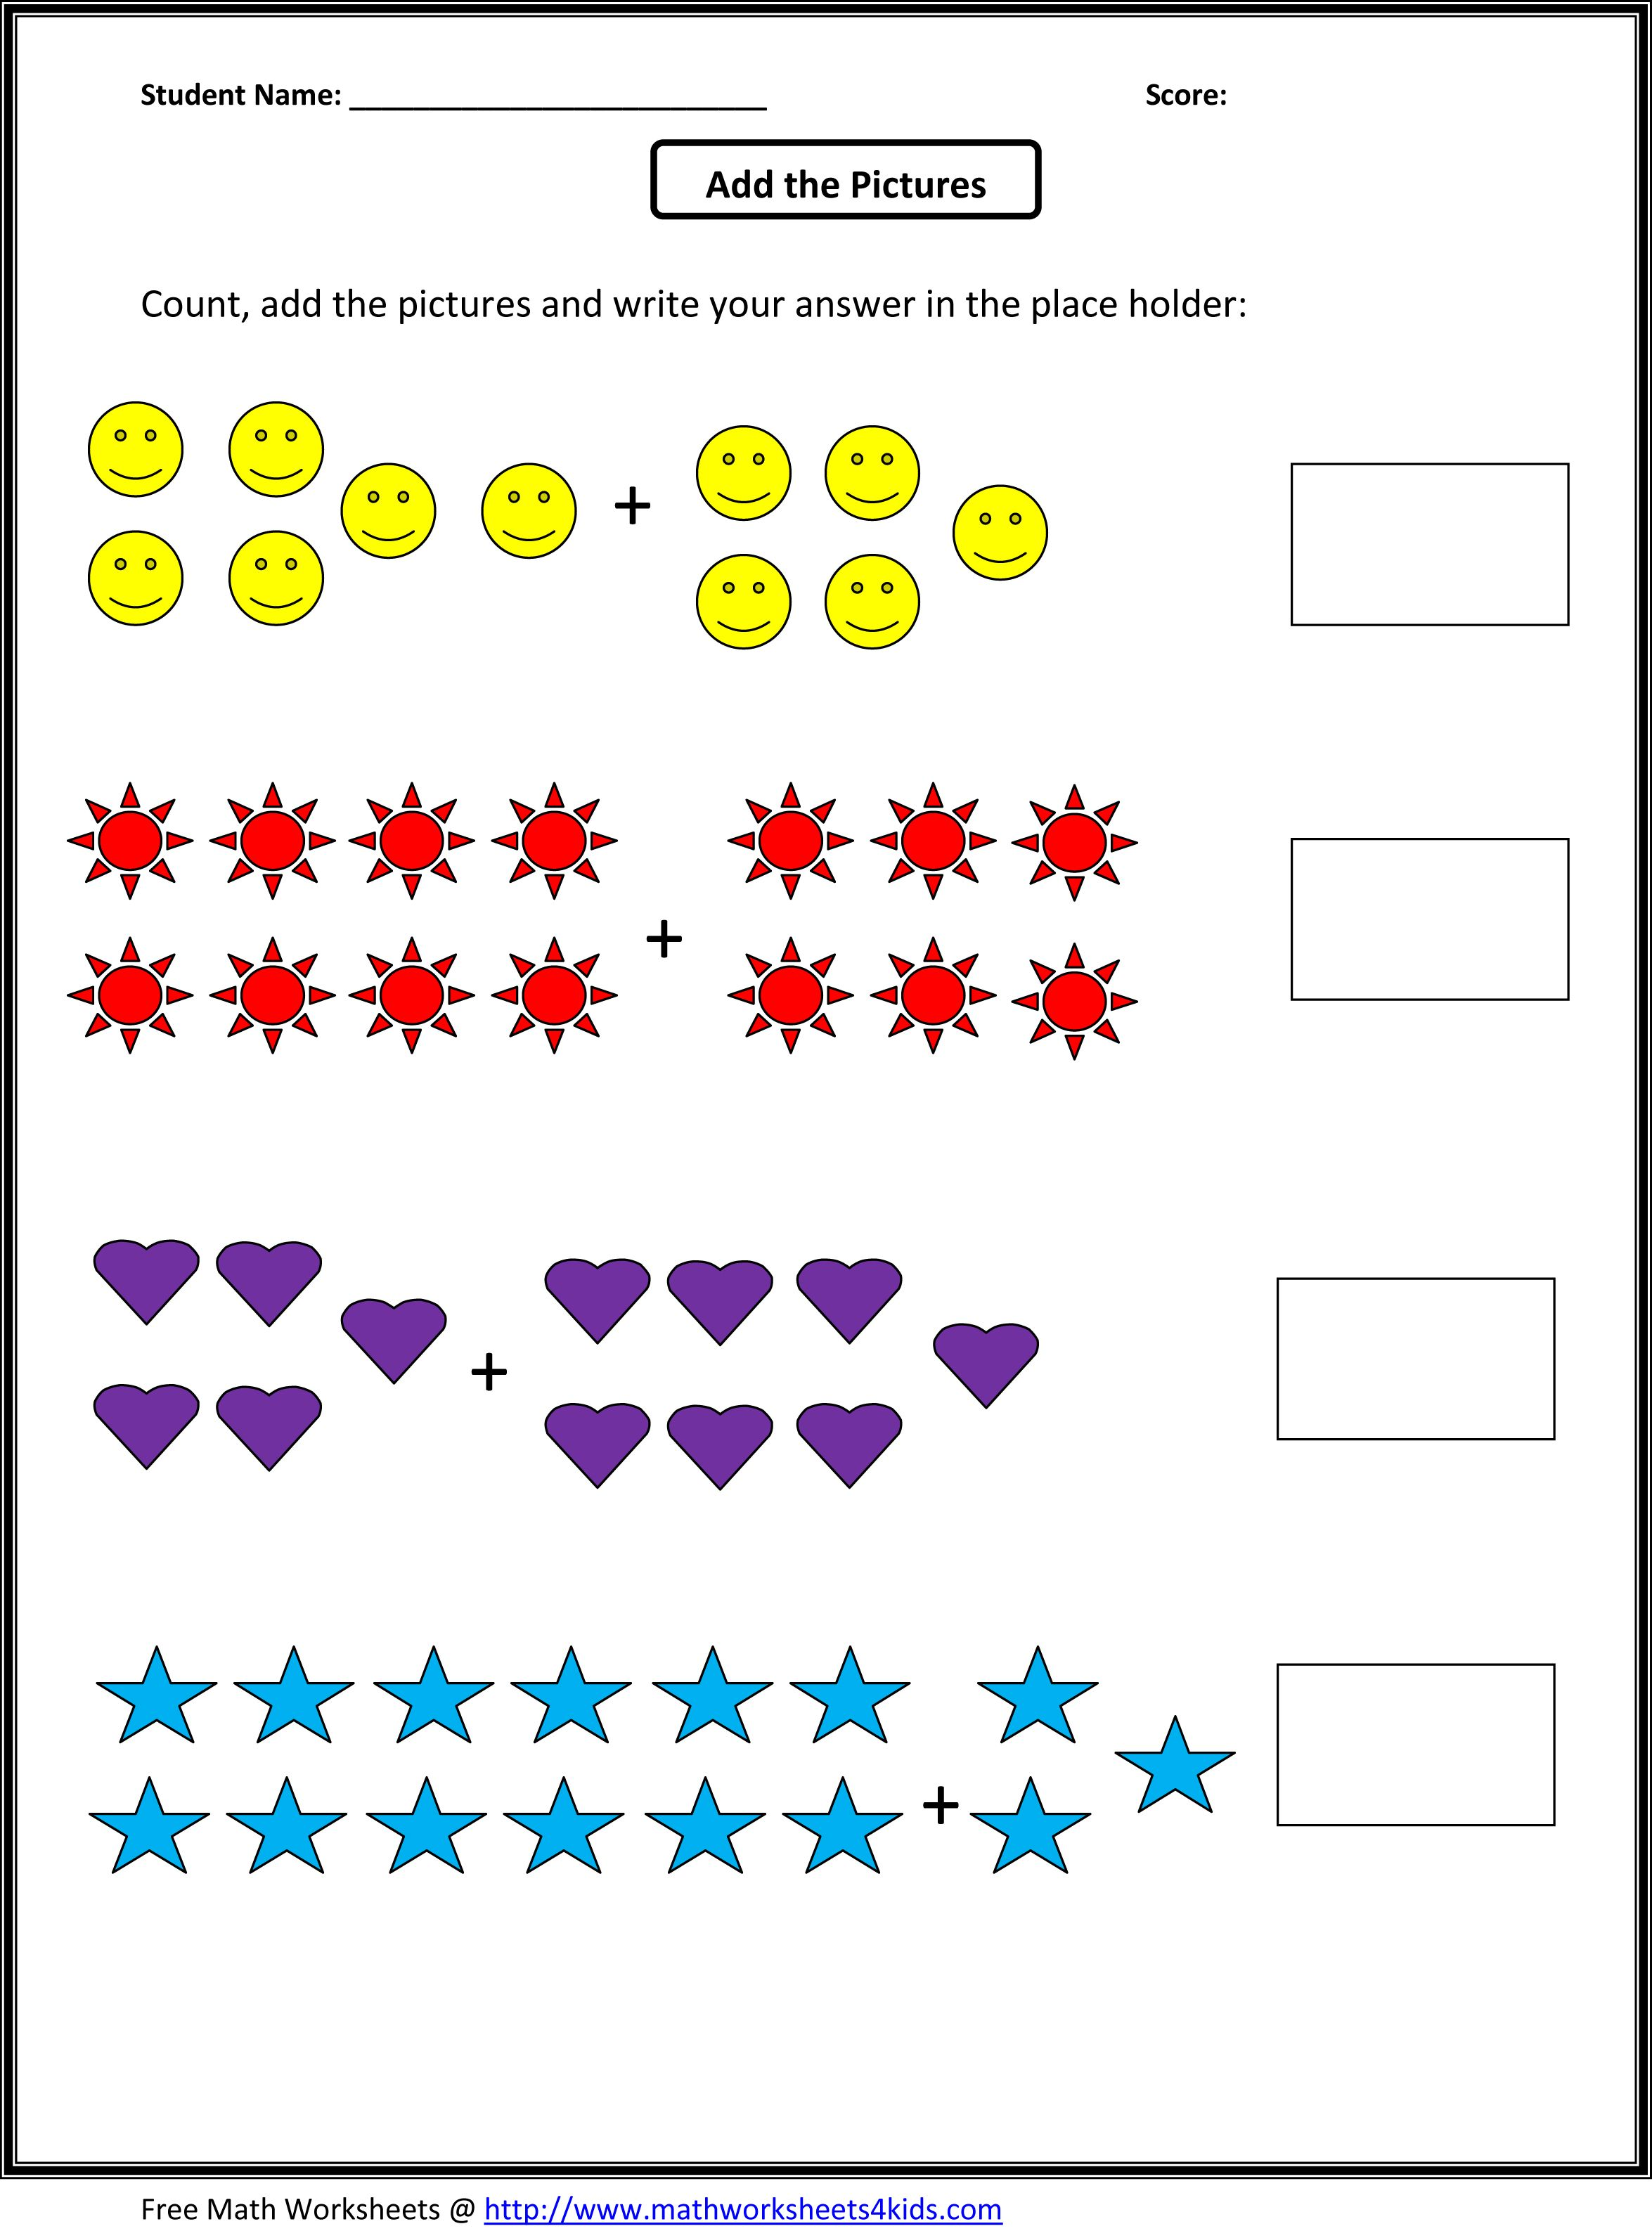 Uncategorized Math Worksheet Grade 1 grade 1 addition math worksheets first worksheets